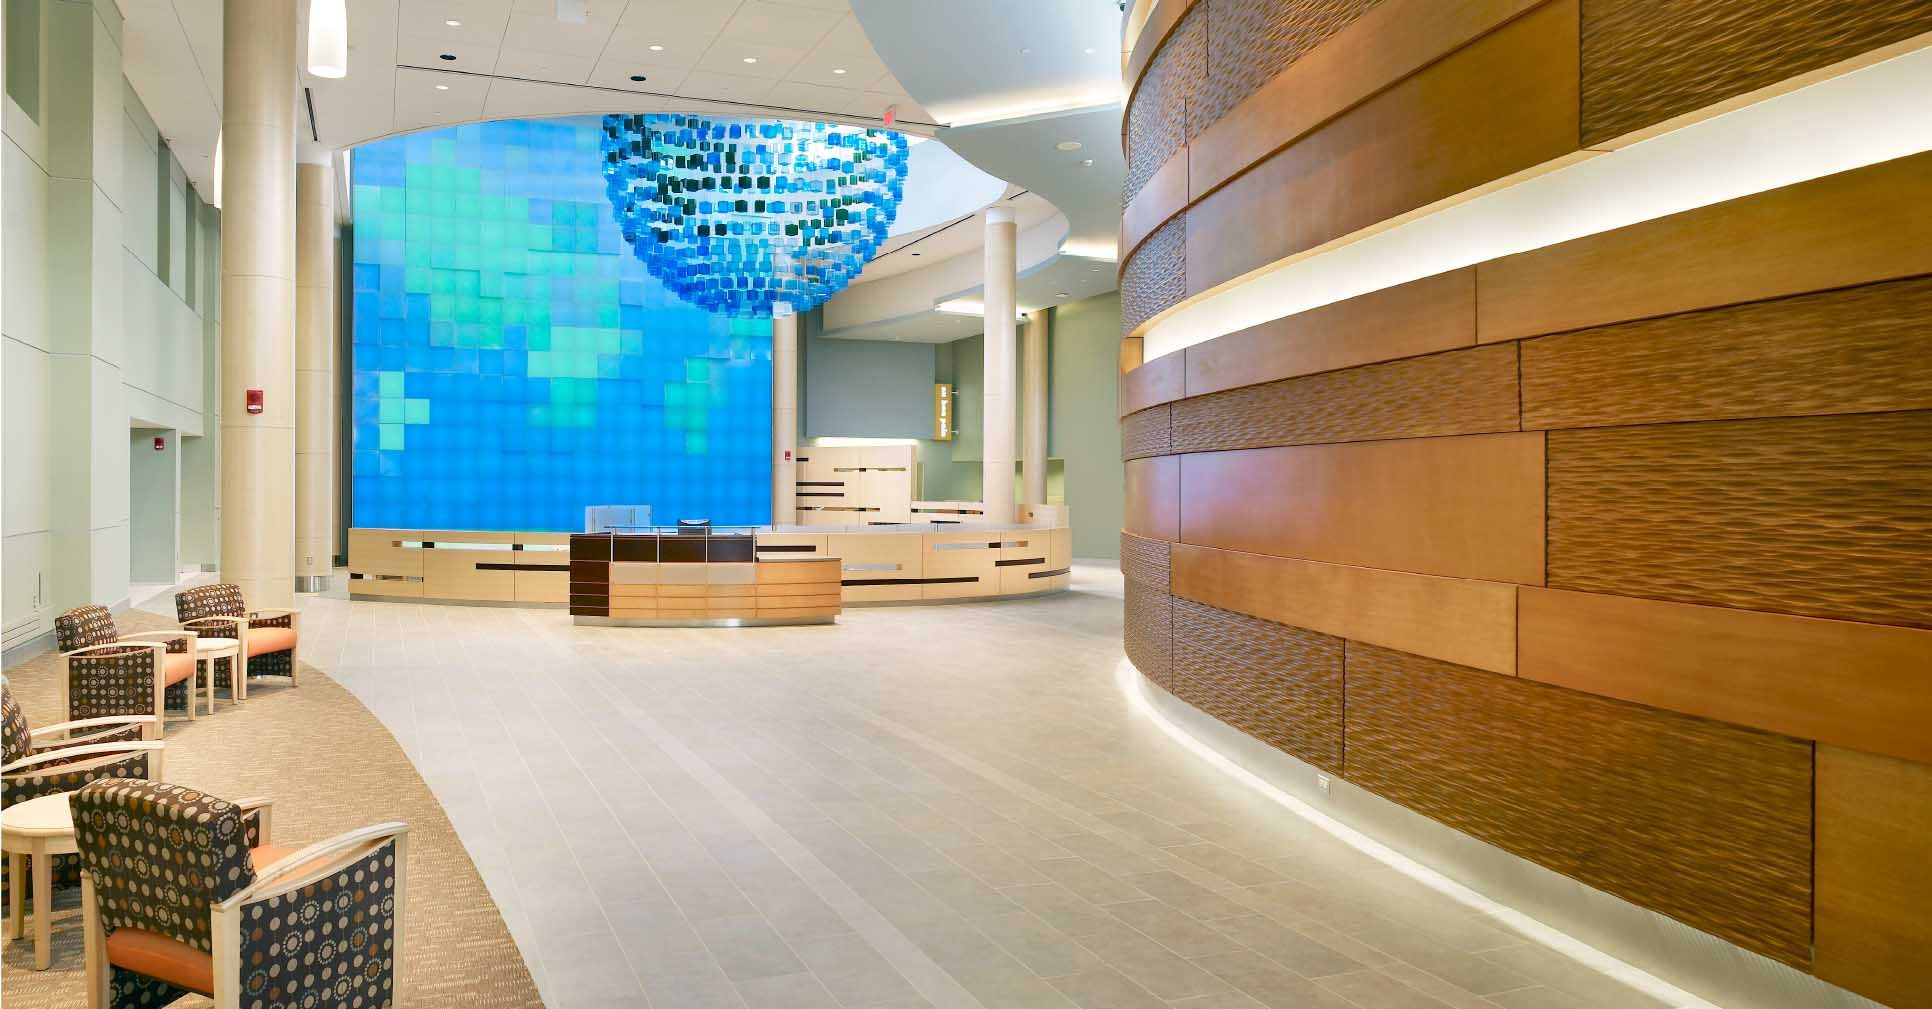 St josephs hospital new jersey hospital expansion lobby explore hospital design ceiling panels and more dailygadgetfo Images